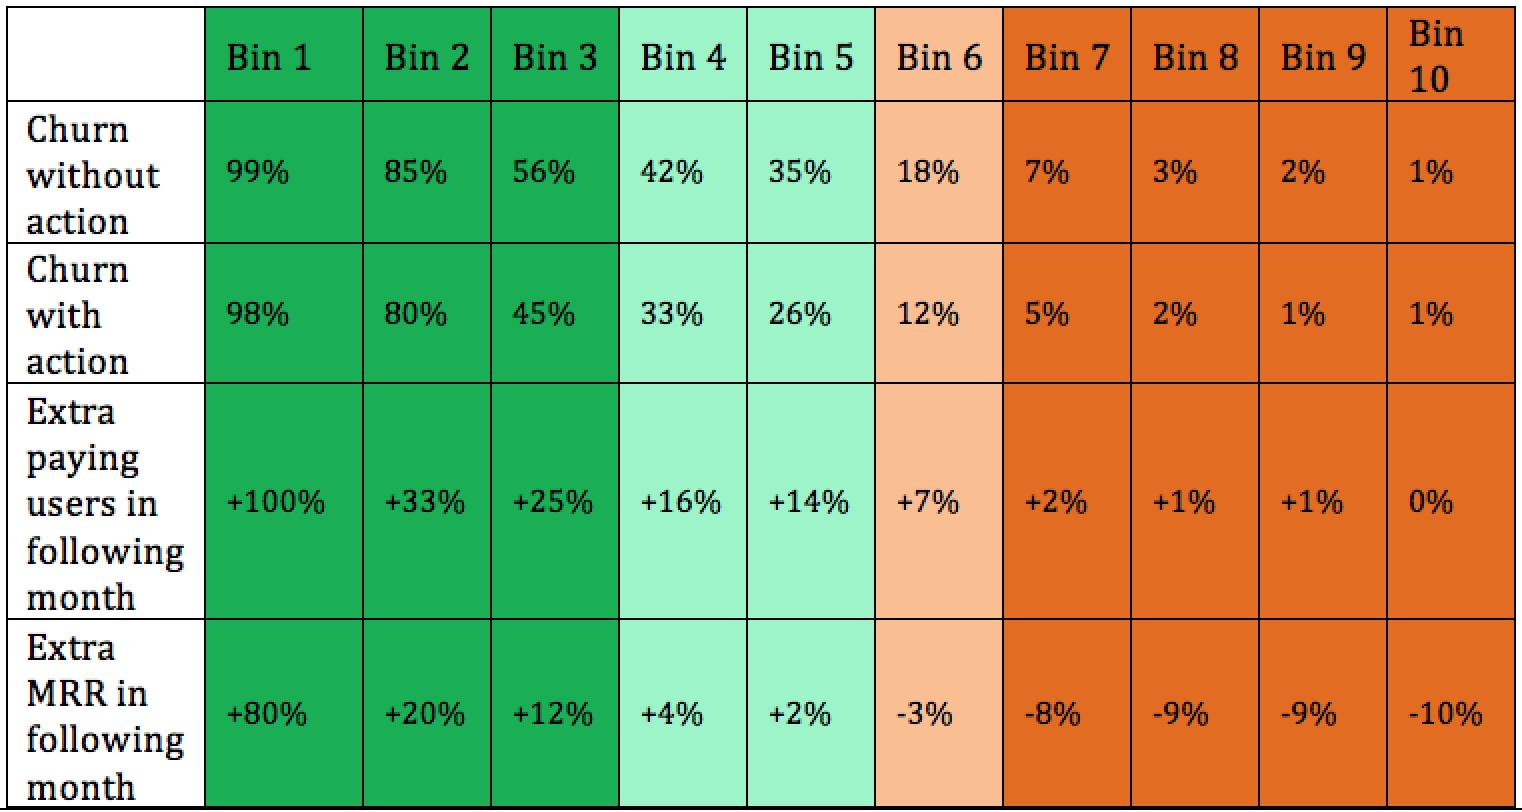 Bin by bin ROI table